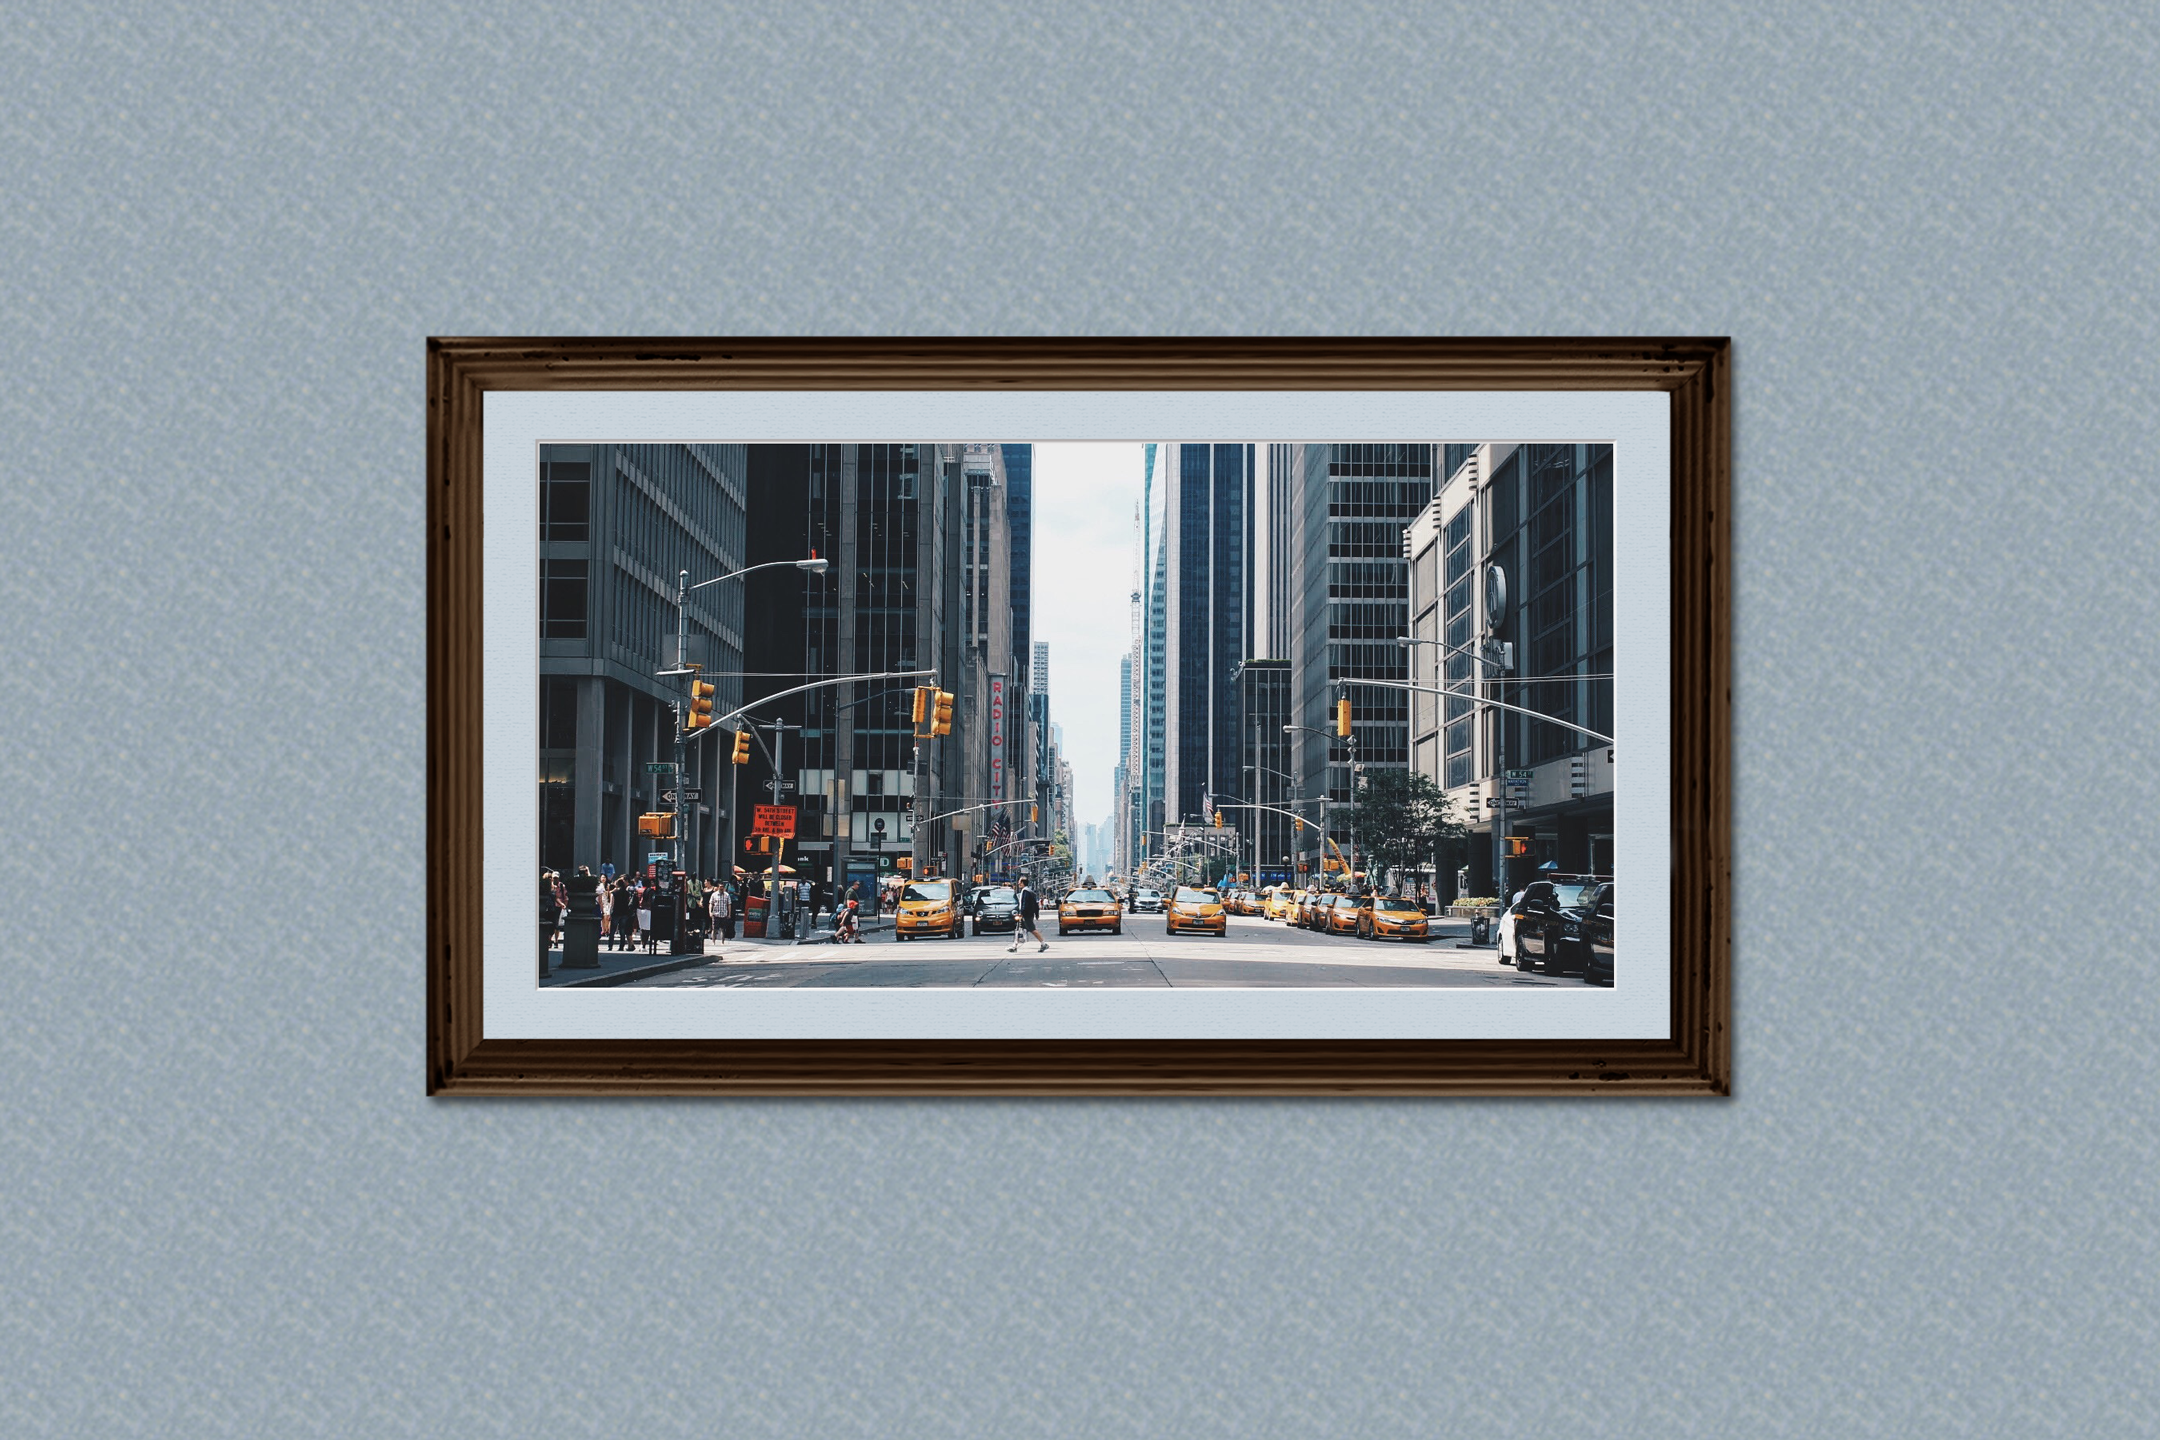 Horizontal Frame Mockup, Photoshop Smart Object, PSD example image 2